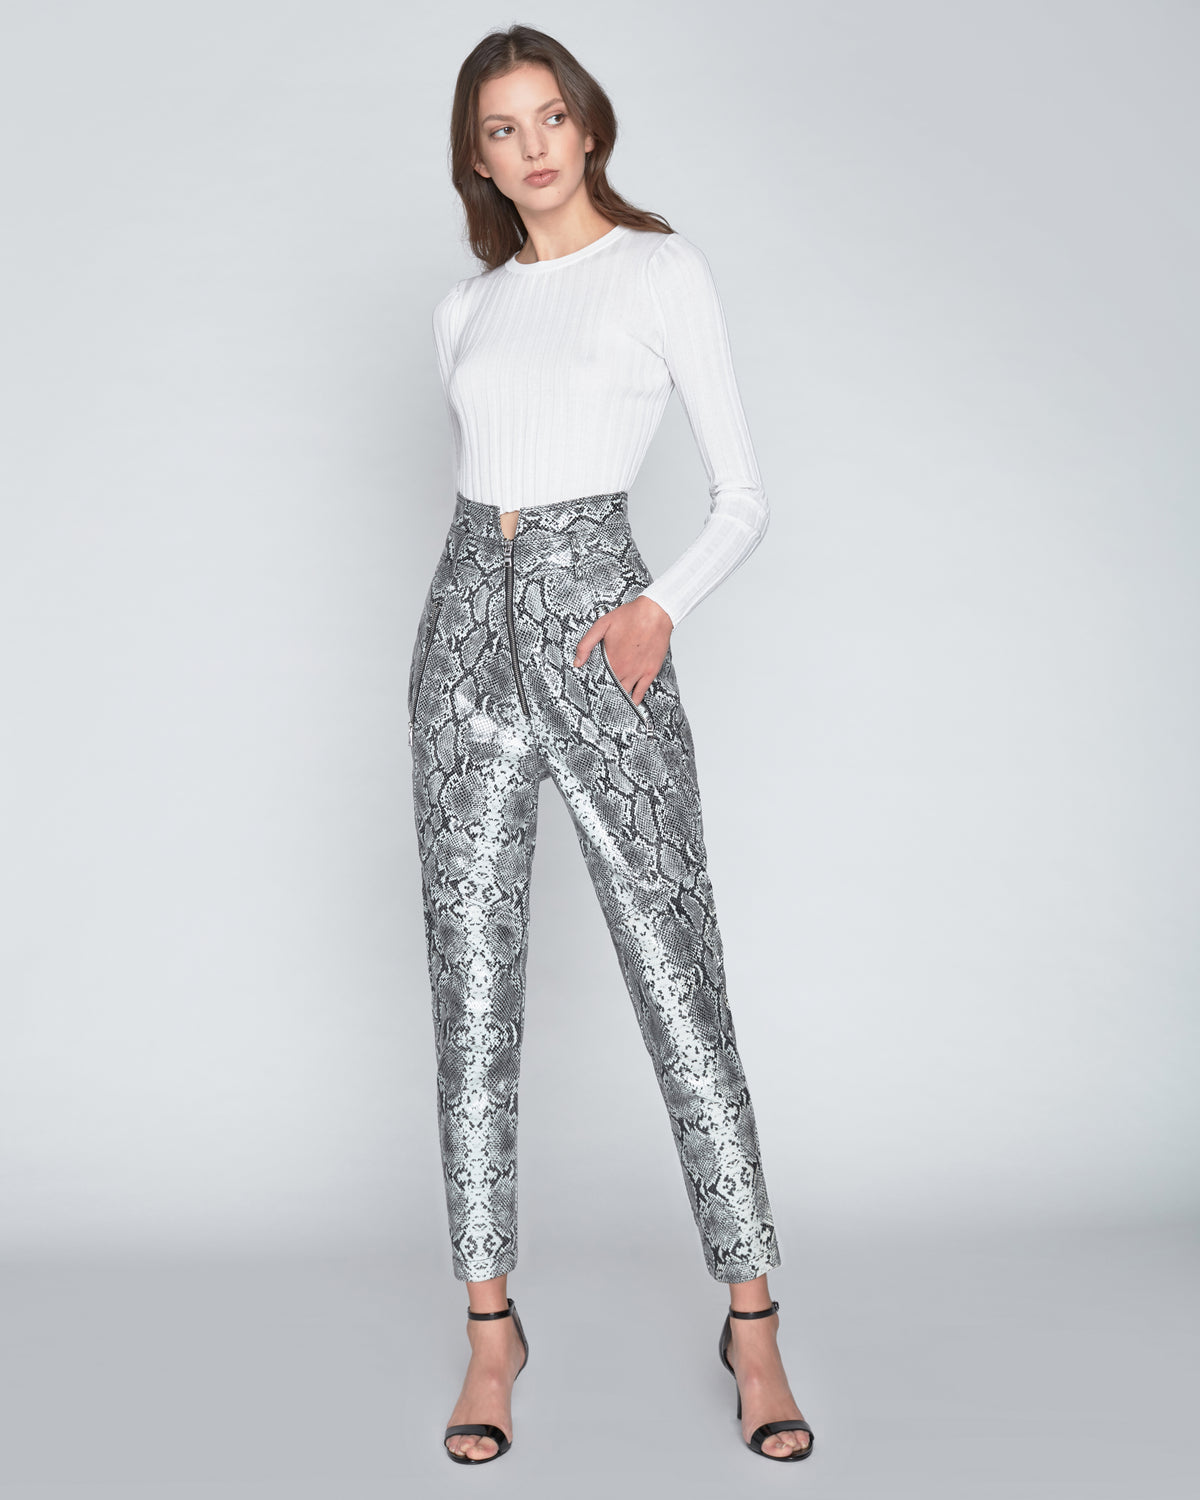 Josh Leather Grey Python Print Pant